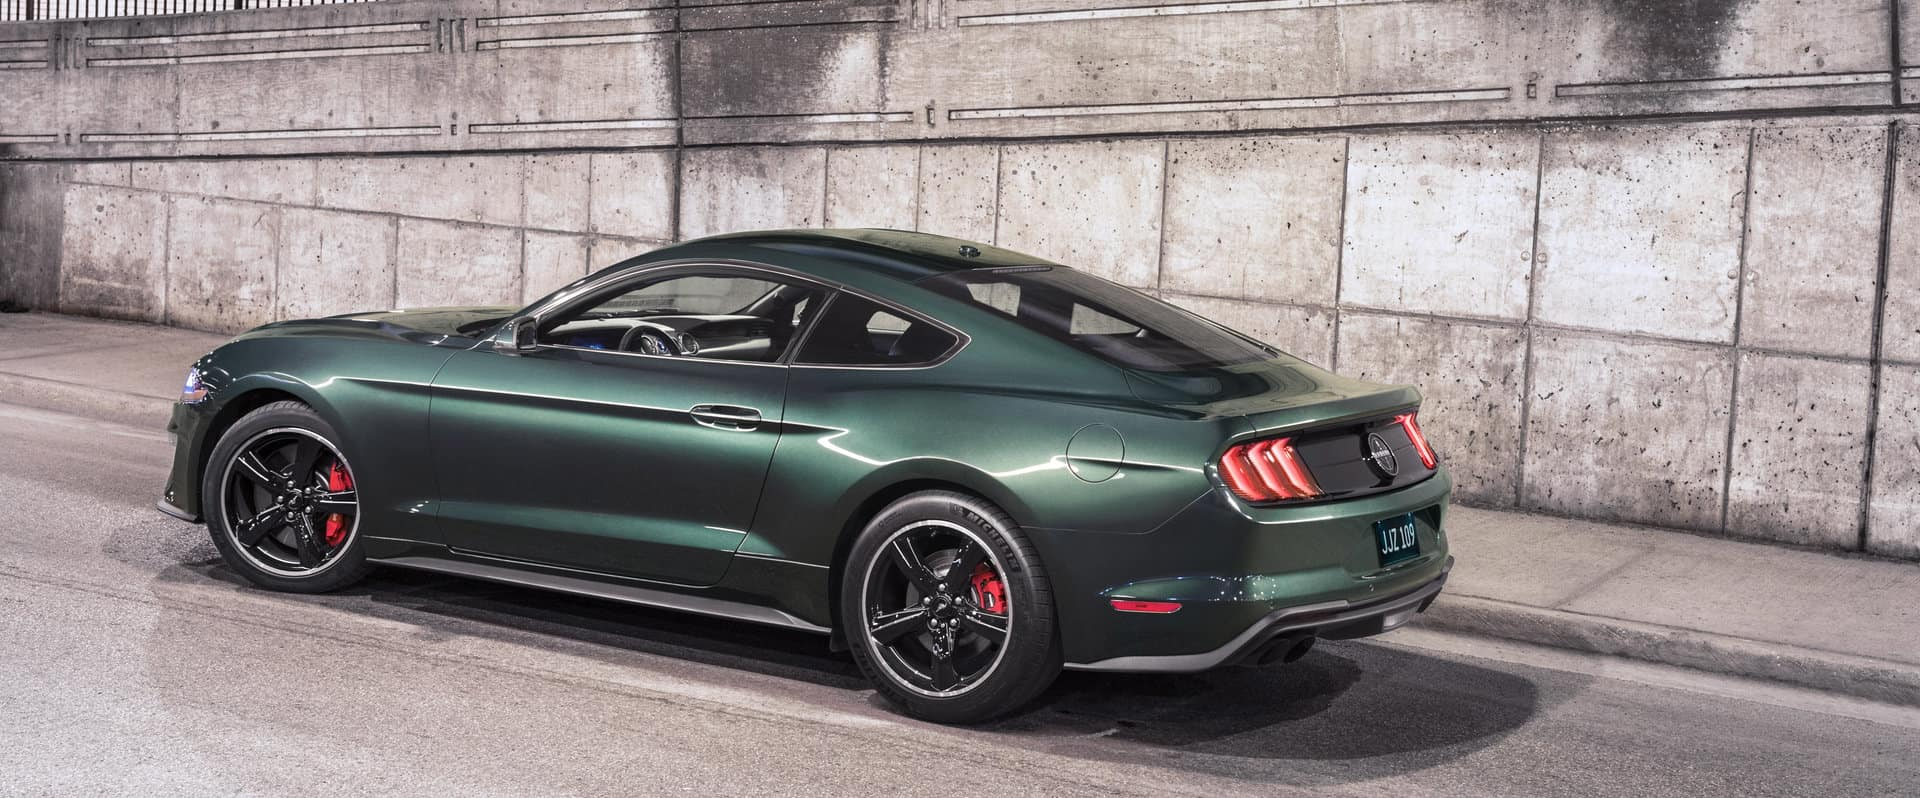 Ford introduces the new cool and powerful 2019 Mustang Bullitt.